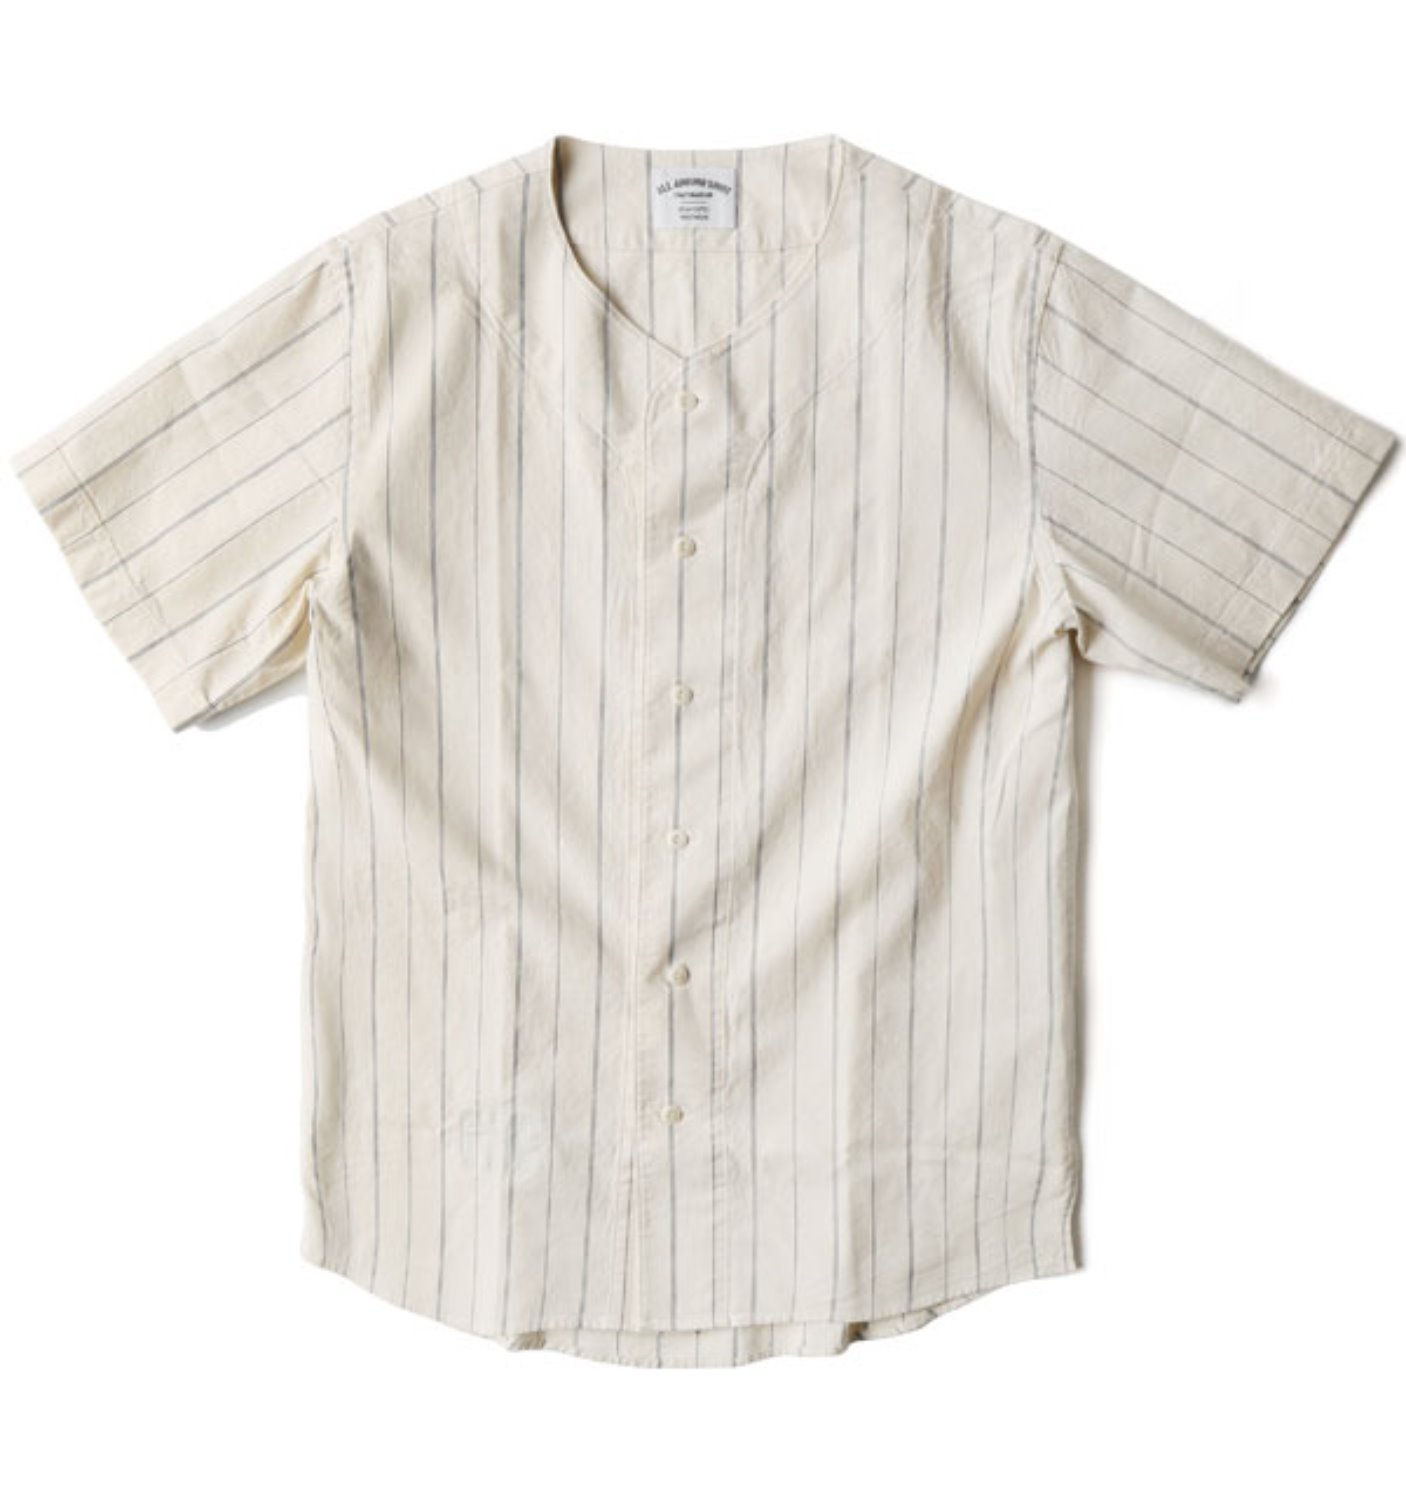 SC-BS01 Baseball Shirt NAVY (Sculp Exclusive)